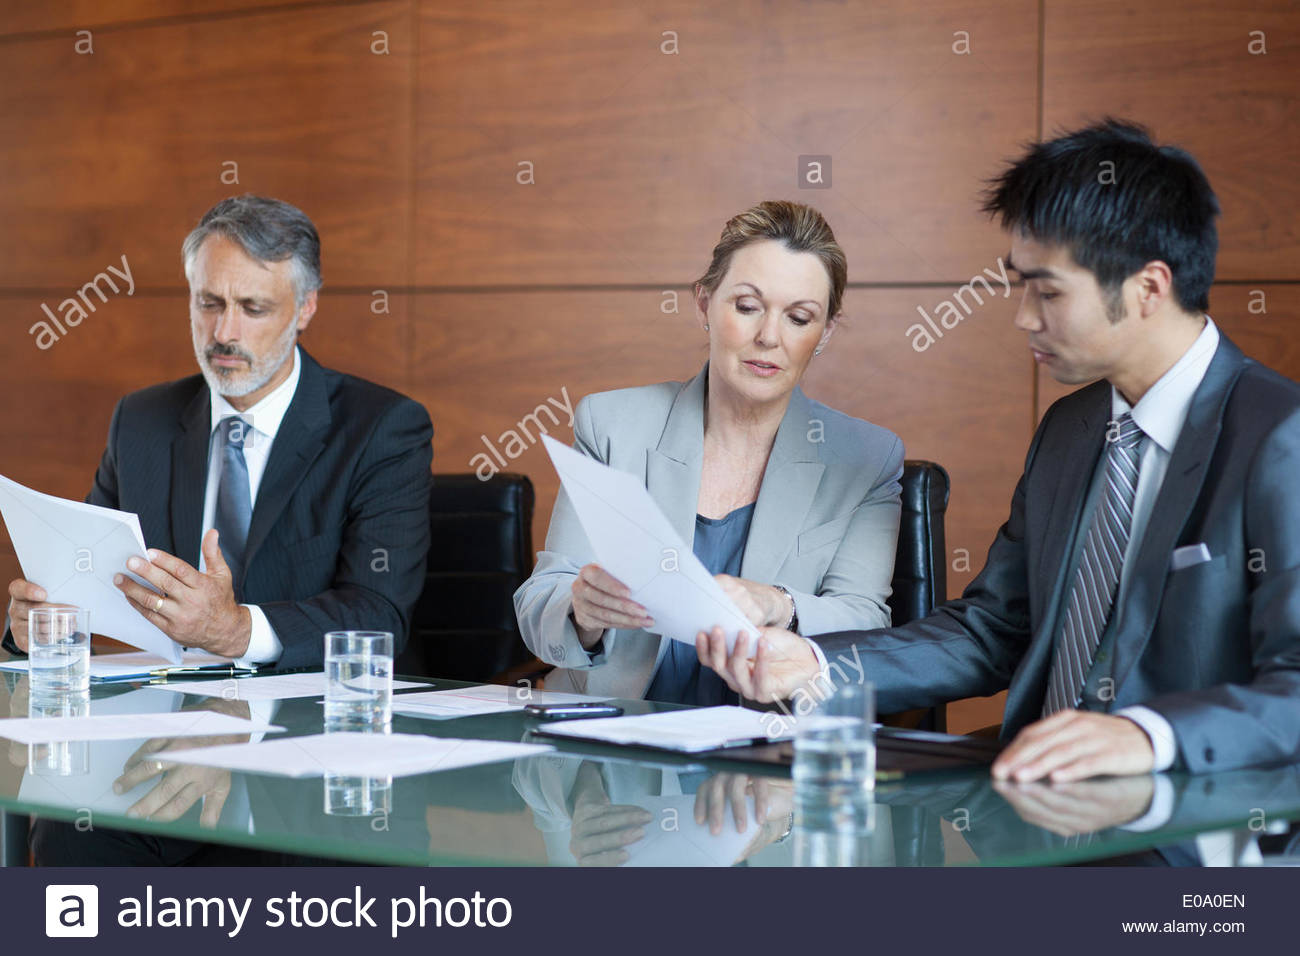 Businesswoman showing paperwork to businessman in meeting - Stock Image